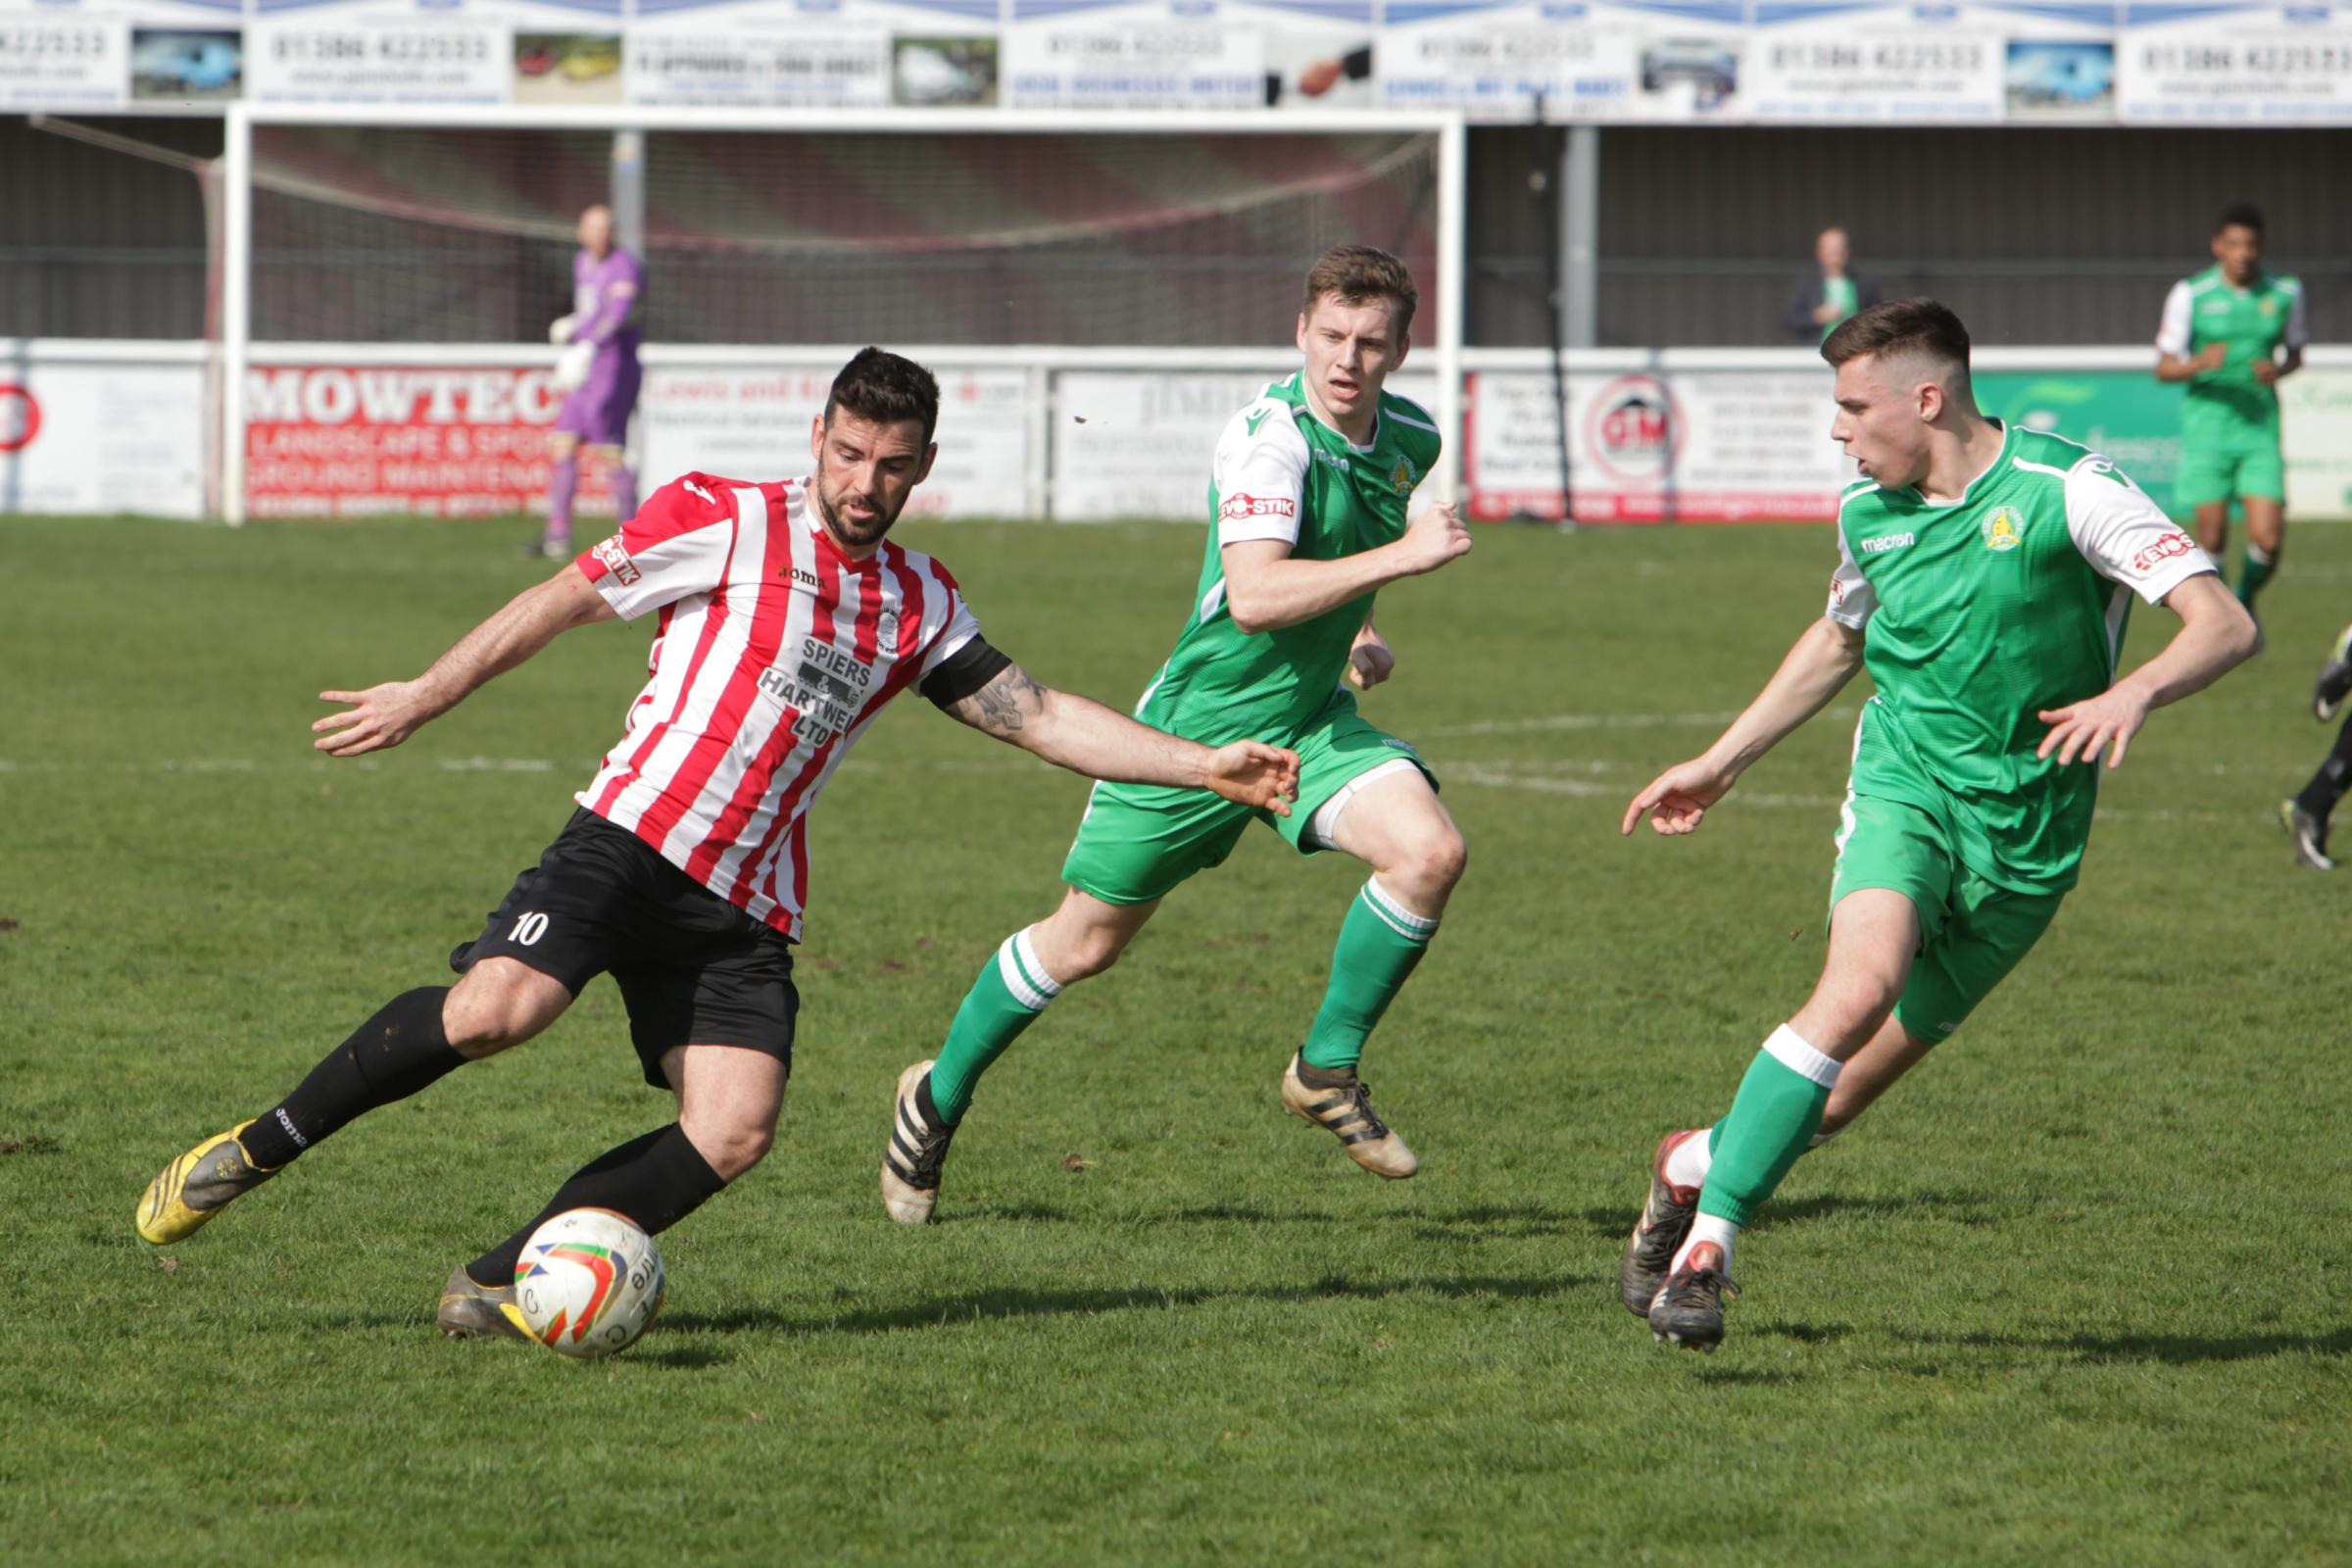 Adam Mann (left) scored twice for Evesham United. Picture: www.stuartpurfield.co.uk